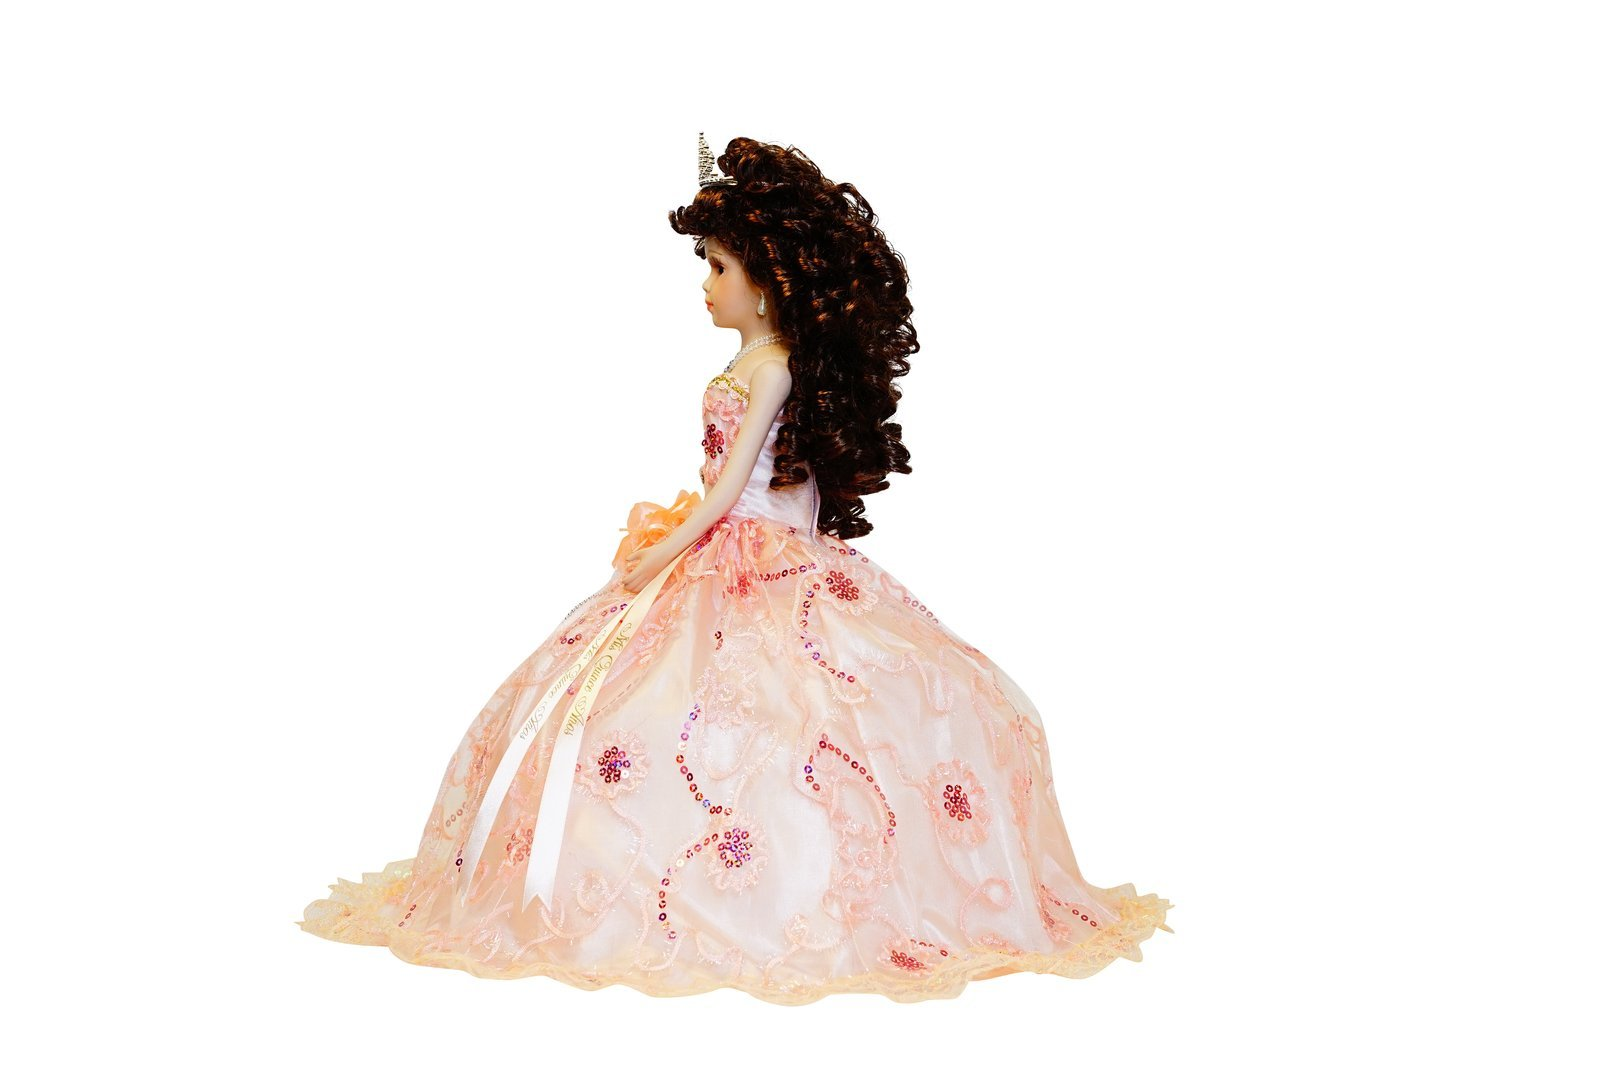 Kinnex Collections by Amanda 18'' Porcelain Quinceanera Umbrella Doll (Table Centerpiece)~ Peach~ KK18725-28 by Kinnex Collections by Amanda (Image #4)